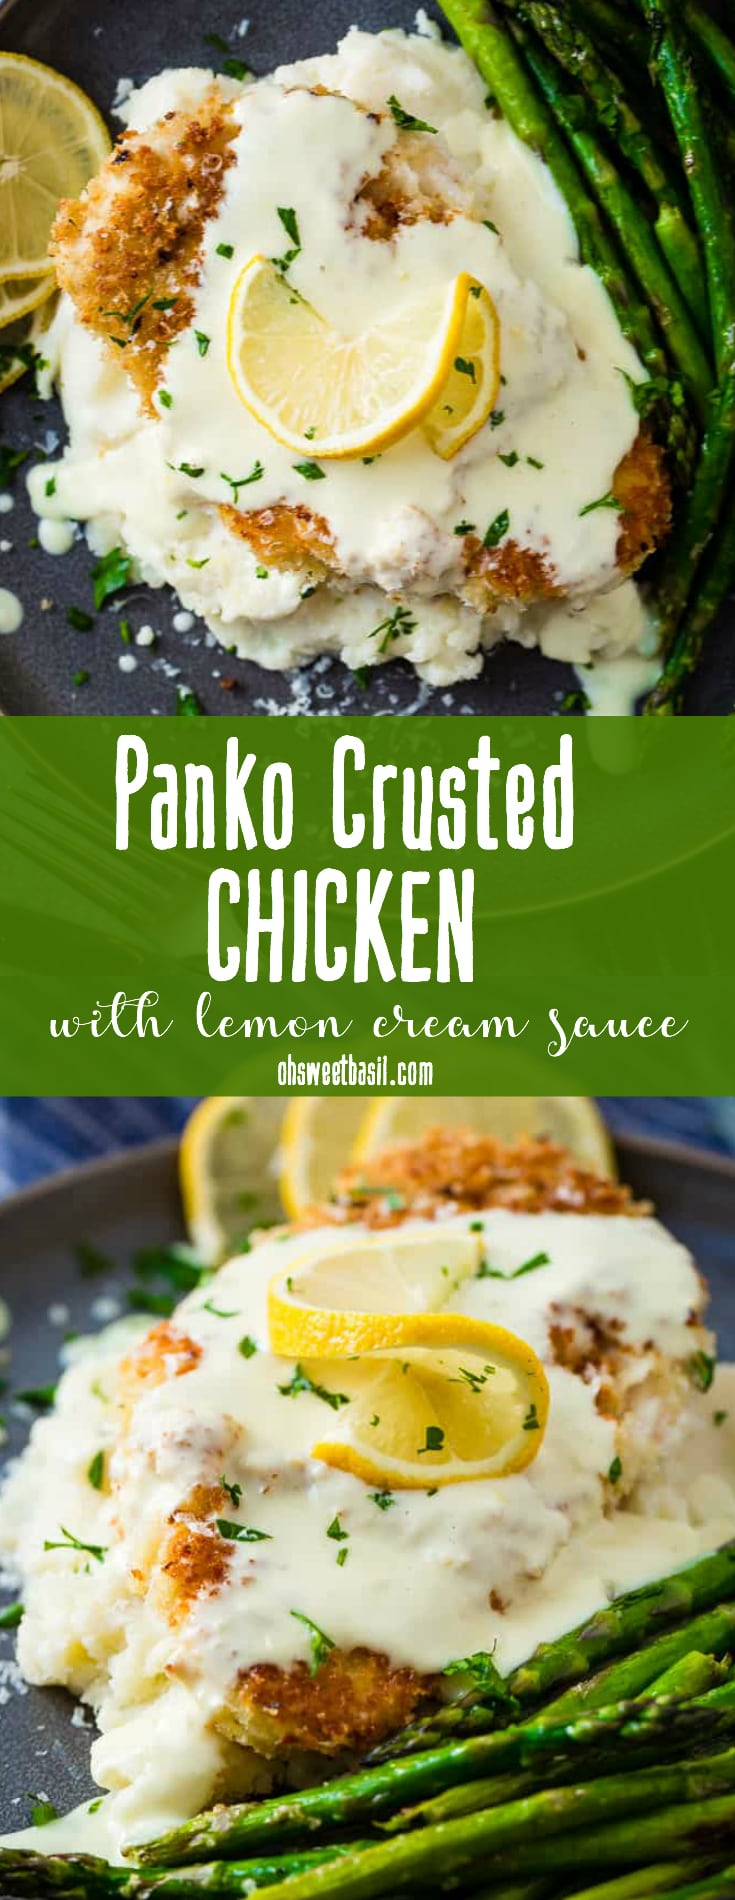 Panko Crusted Chicken with a Lemon Cream Sauce